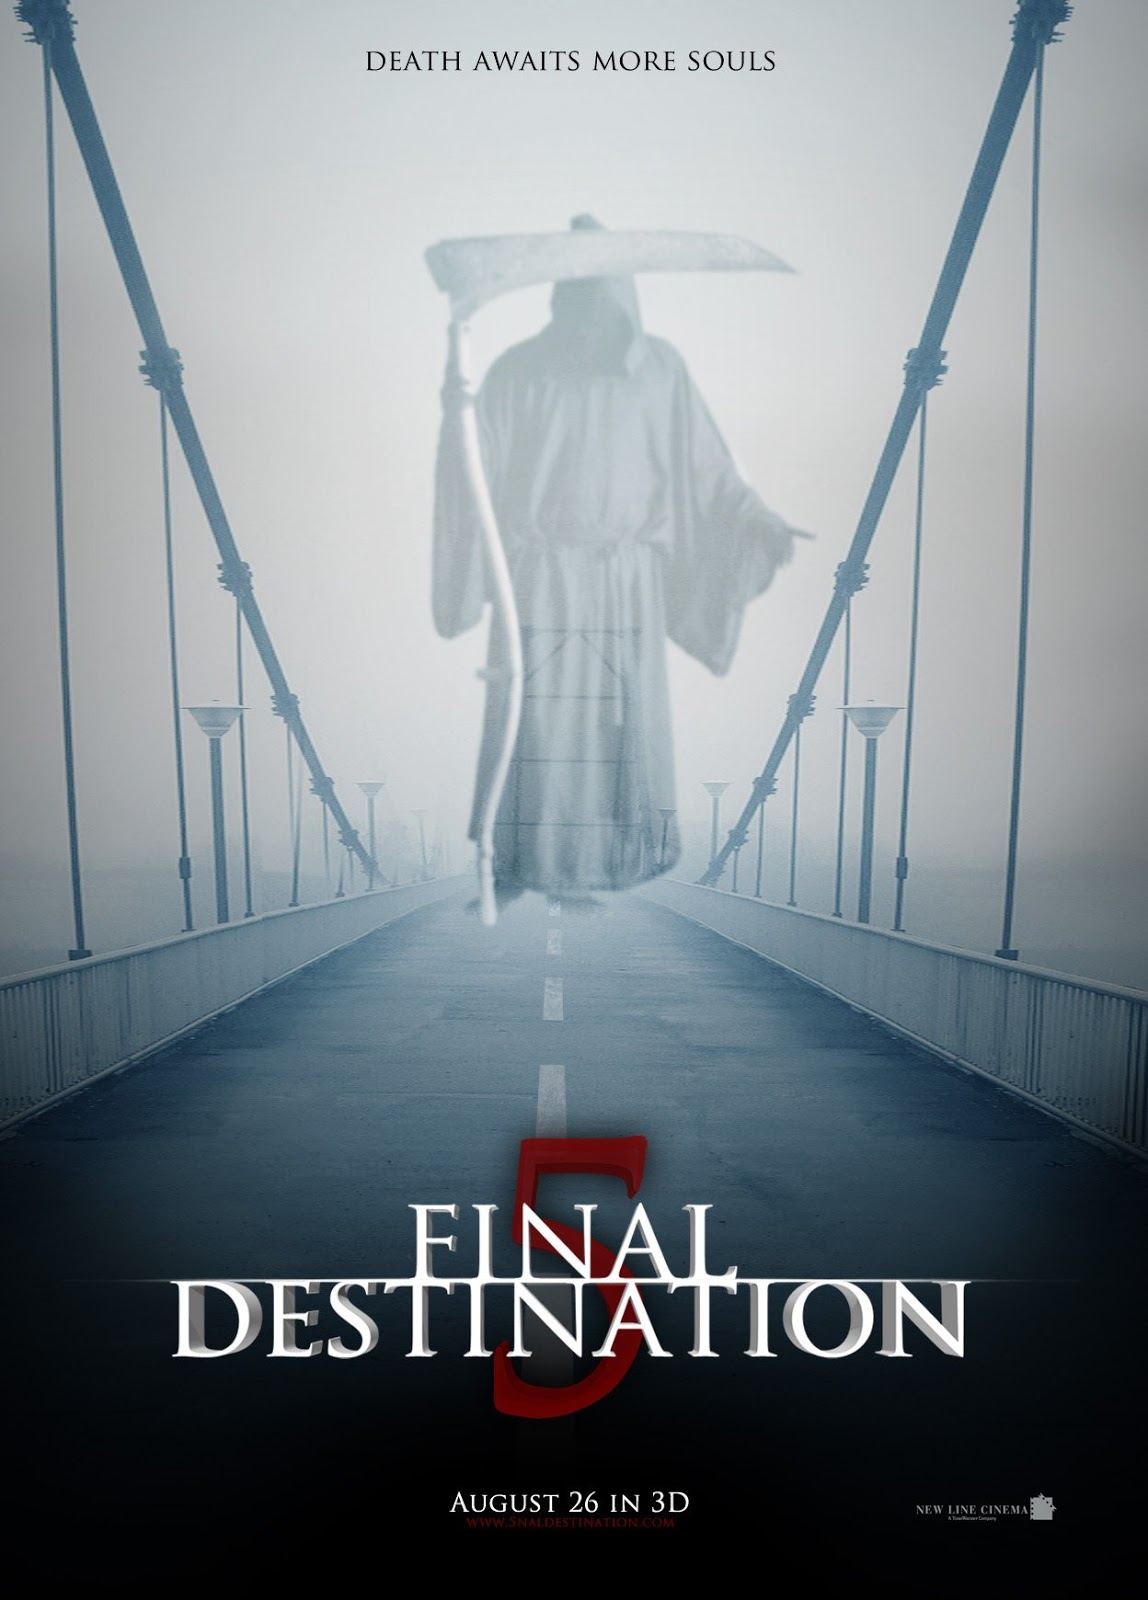 Is Final Destination 5 the best sequel ever made?